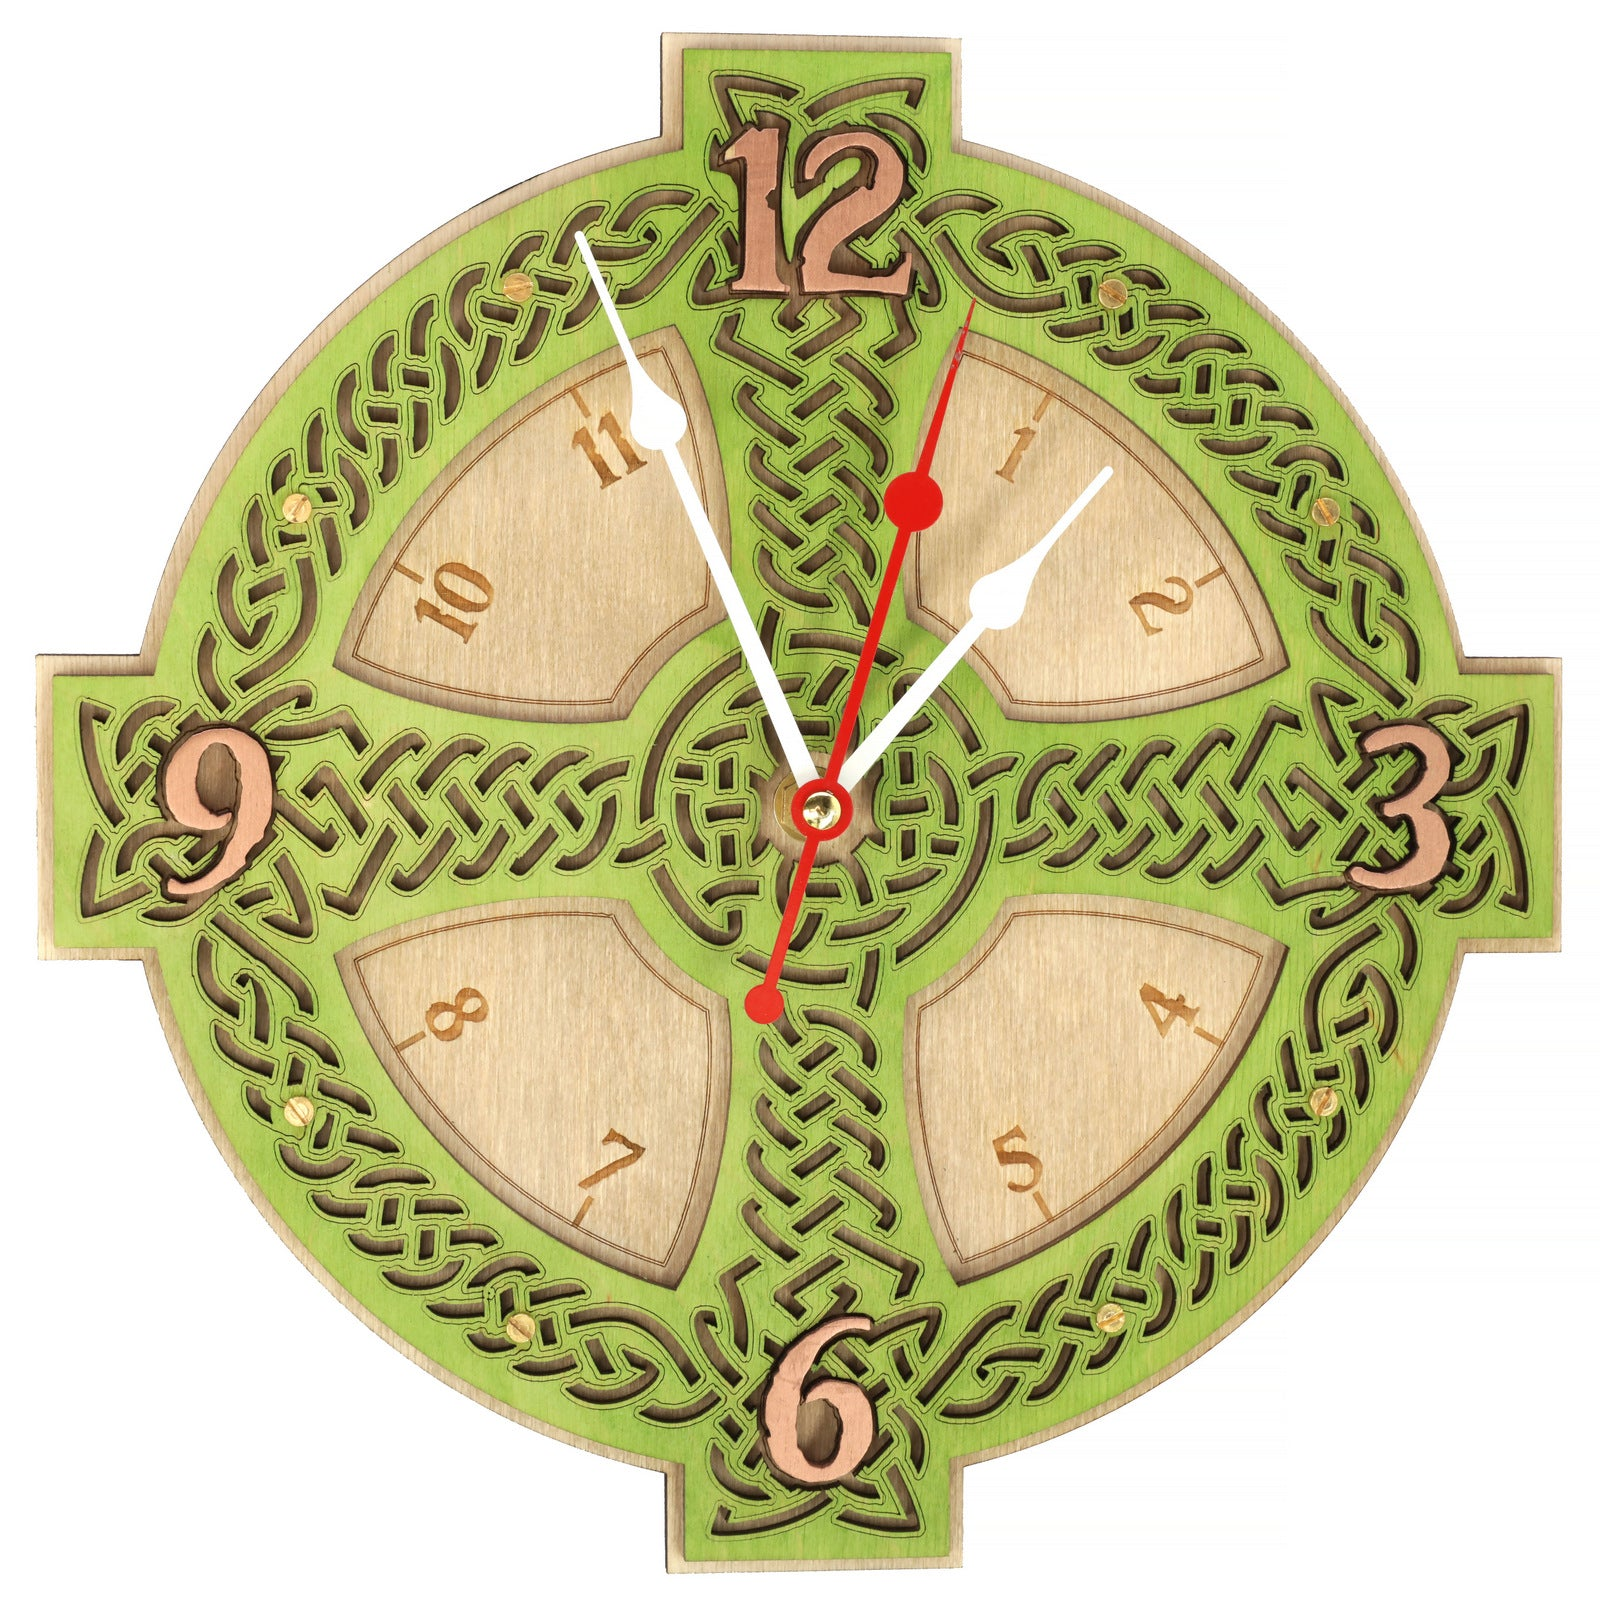 Buy Celtic Cross Wall Clock at WOODANDROOT for only $39.50